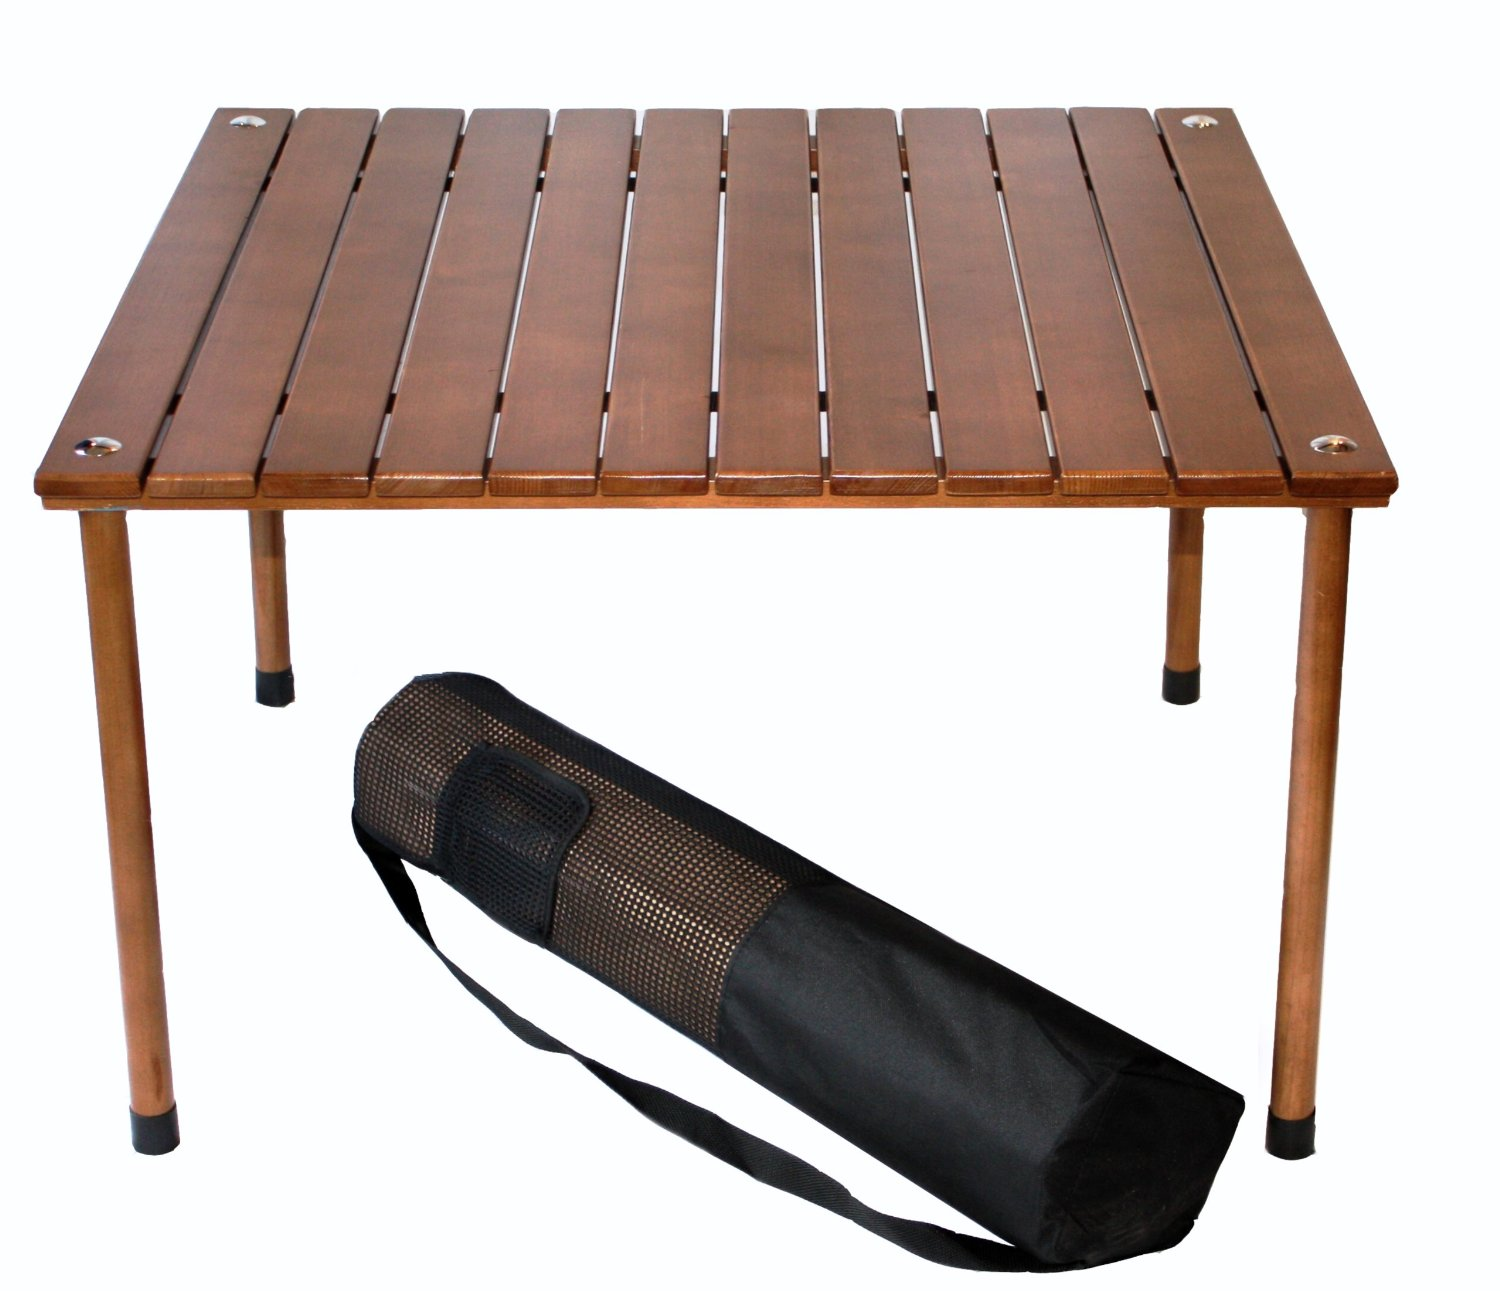 Outdoor Folding Wooden Picnic Table In A Bag,Outdoor Folding Table Camping  Table Folding Camping Equipment Table]   Buy Outdoor Folding Wooden Picnic  Table ...